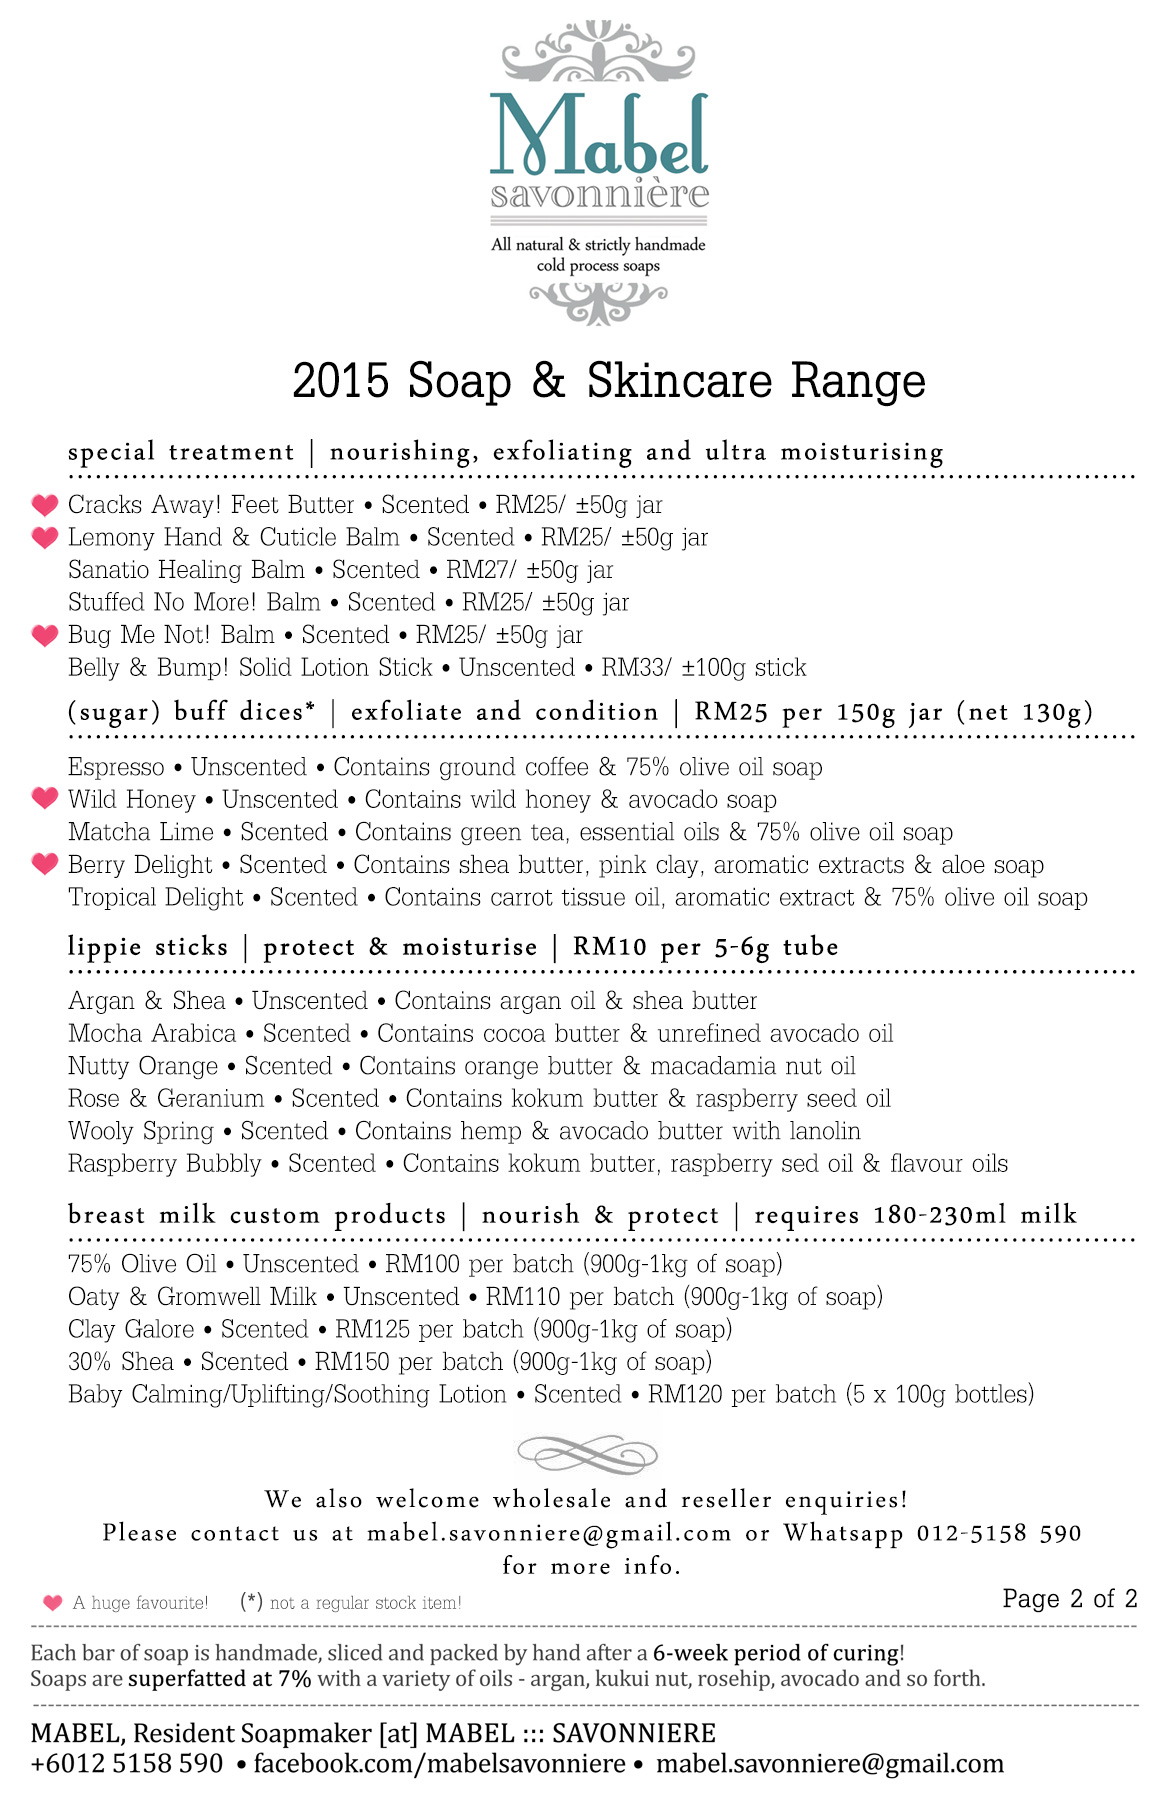 2015 Soap & Skincare Range - Page 2